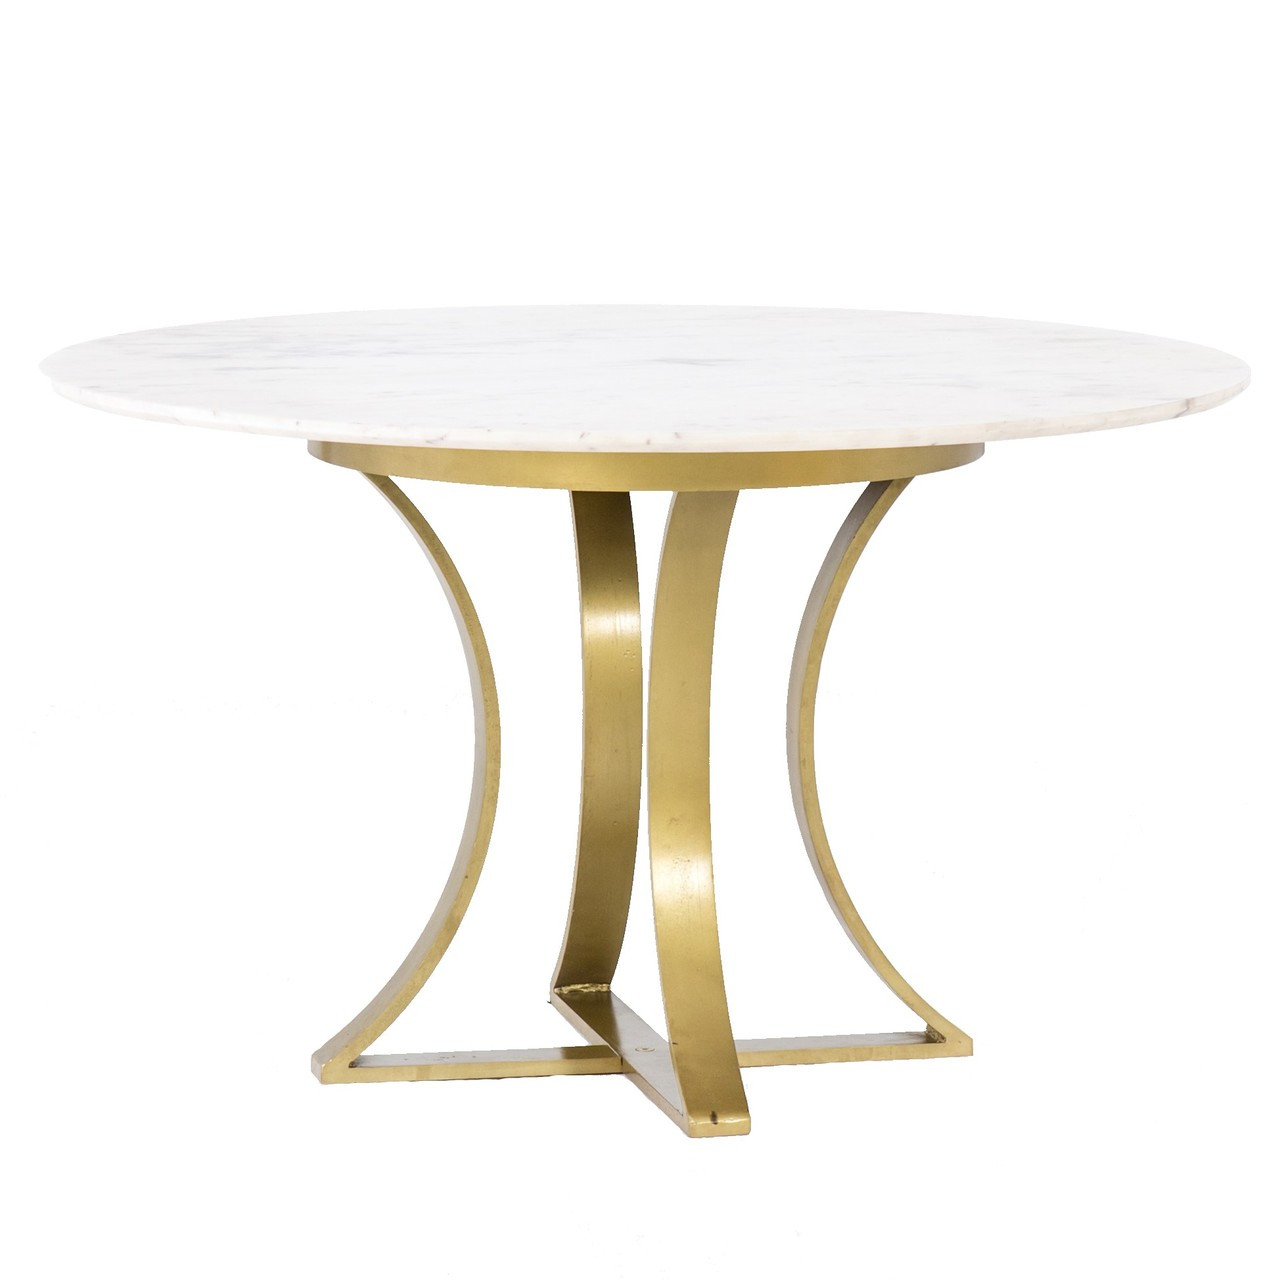 Large Size Of Marble Dining Om Table Restoration Hardware: Gage White Marble & Antique Brass Leg Round Dining Table